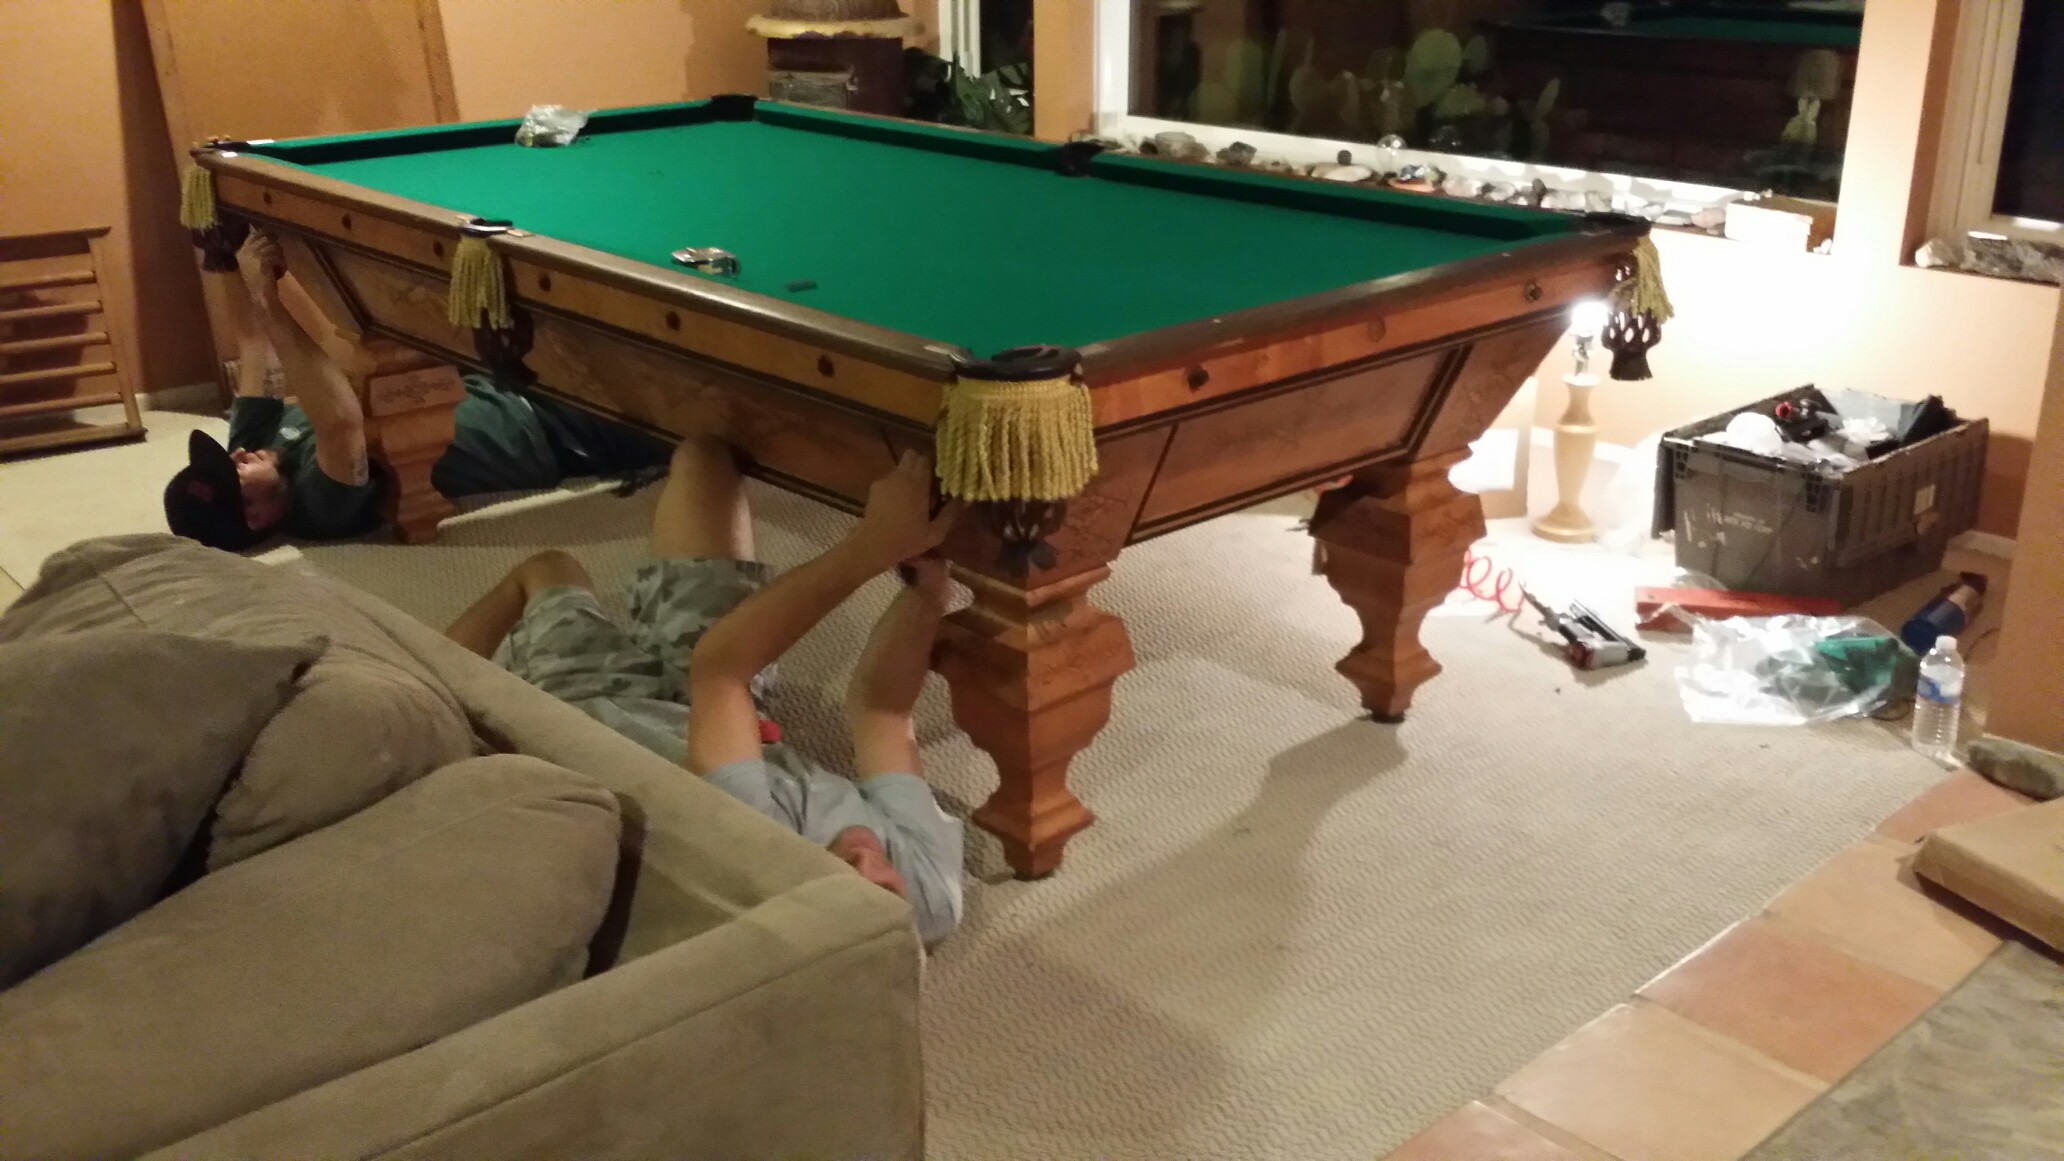 Delicieux Ez Billiards Pool Tables Service Movers U0026 Sales 20613 Soledad Canyon Rd,  Canyon Country, CA 91351   YP.com